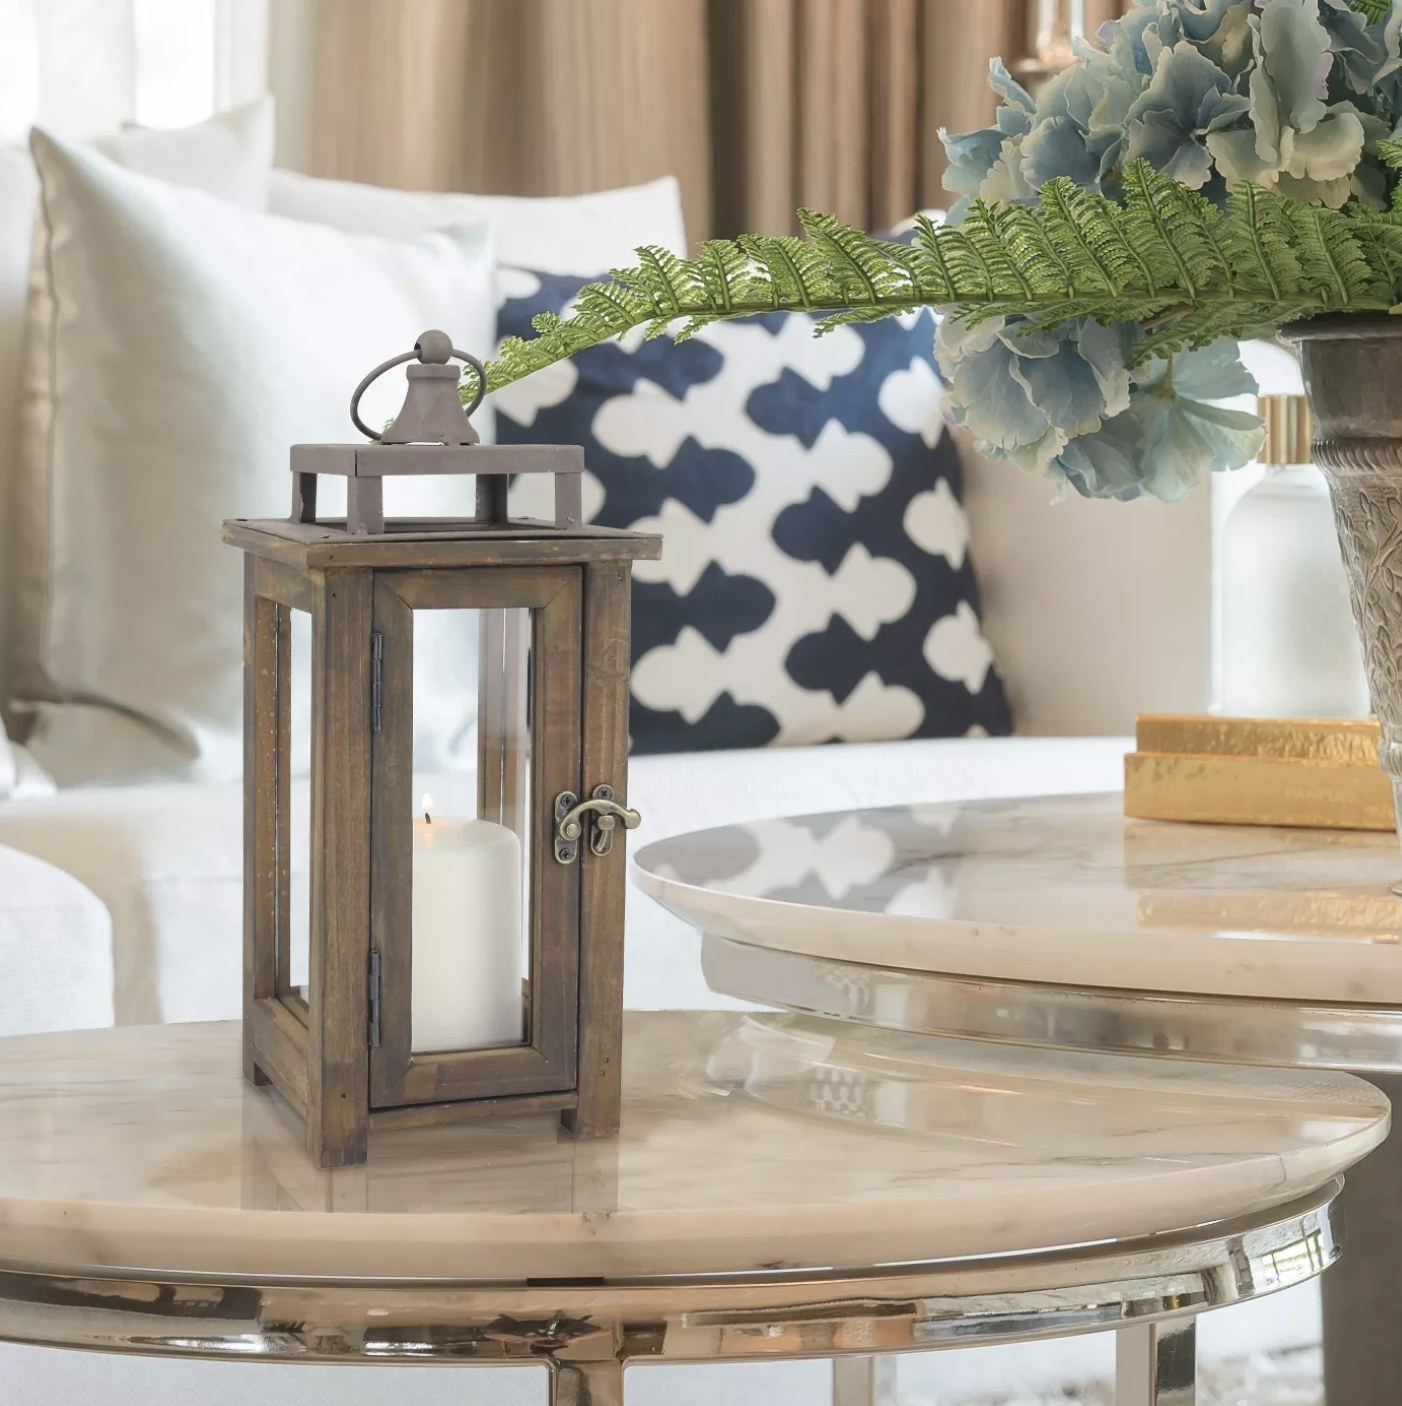 The wood lantern on a table